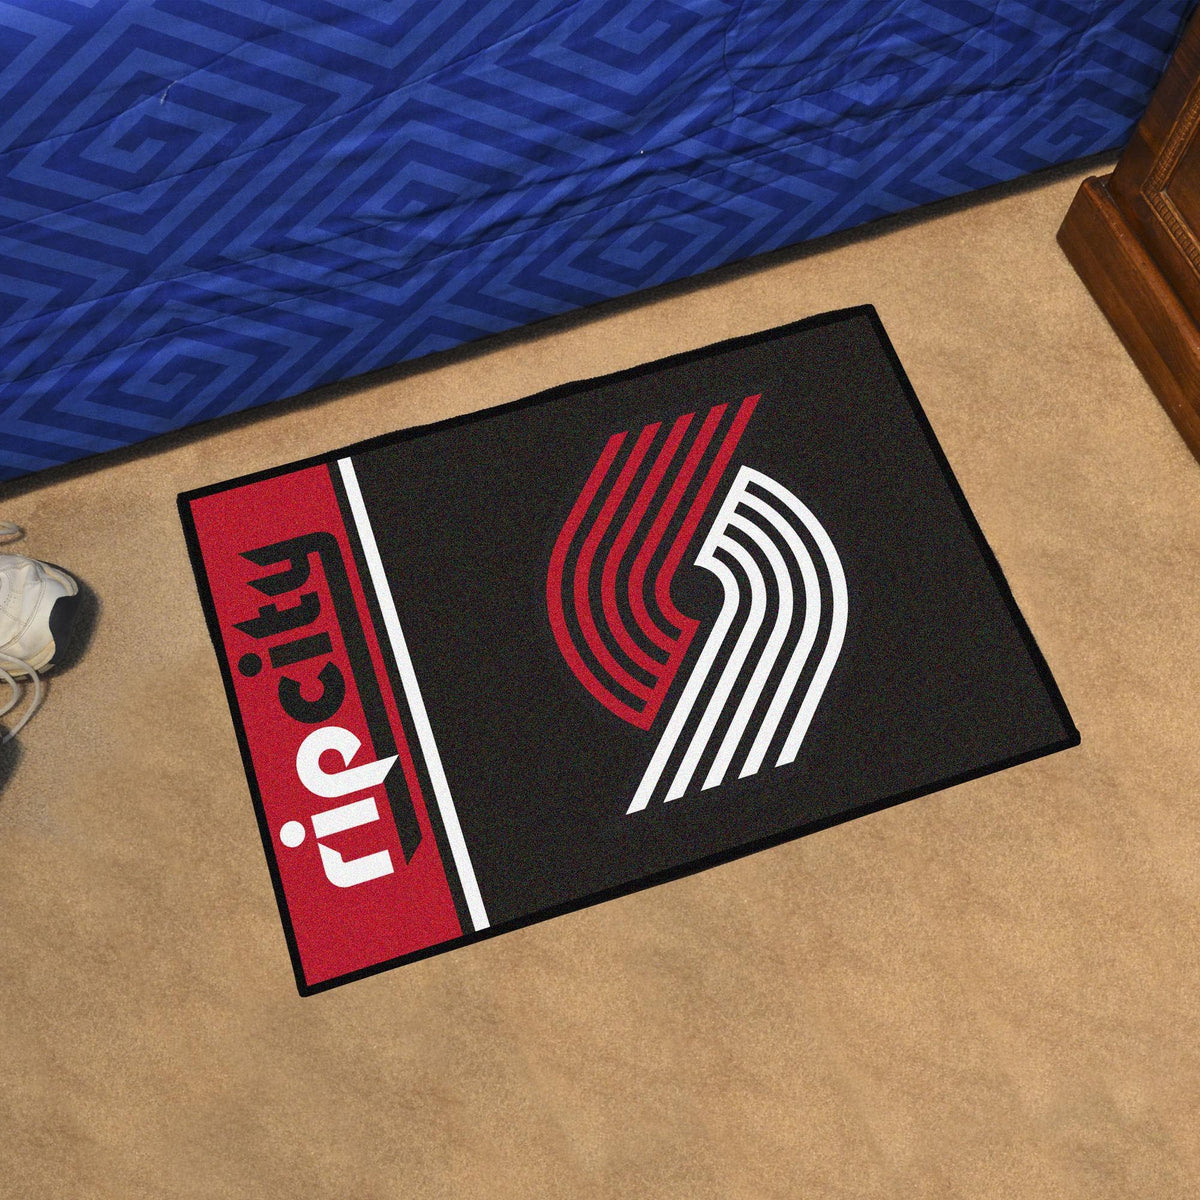 NBA - Uniform Starter Mat NBA Mats, Rectangular Mats, Uniform Starter Mat, NBA, Home Fan Mats Portland Trail Blazers